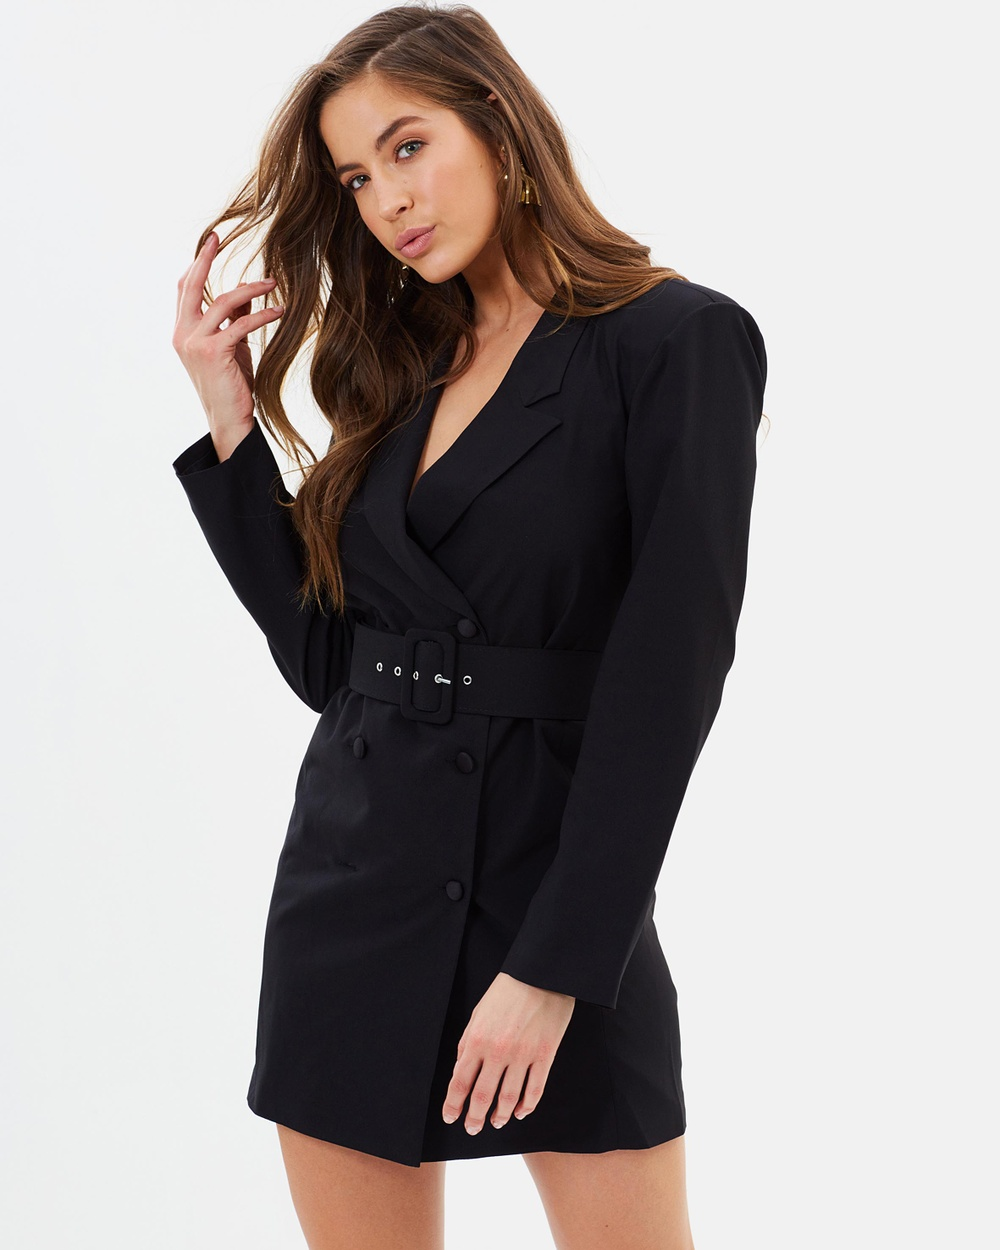 Missguided Crepe Belted Button Blazer Dress Dresses Black Crepe Belted Button Blazer Dress